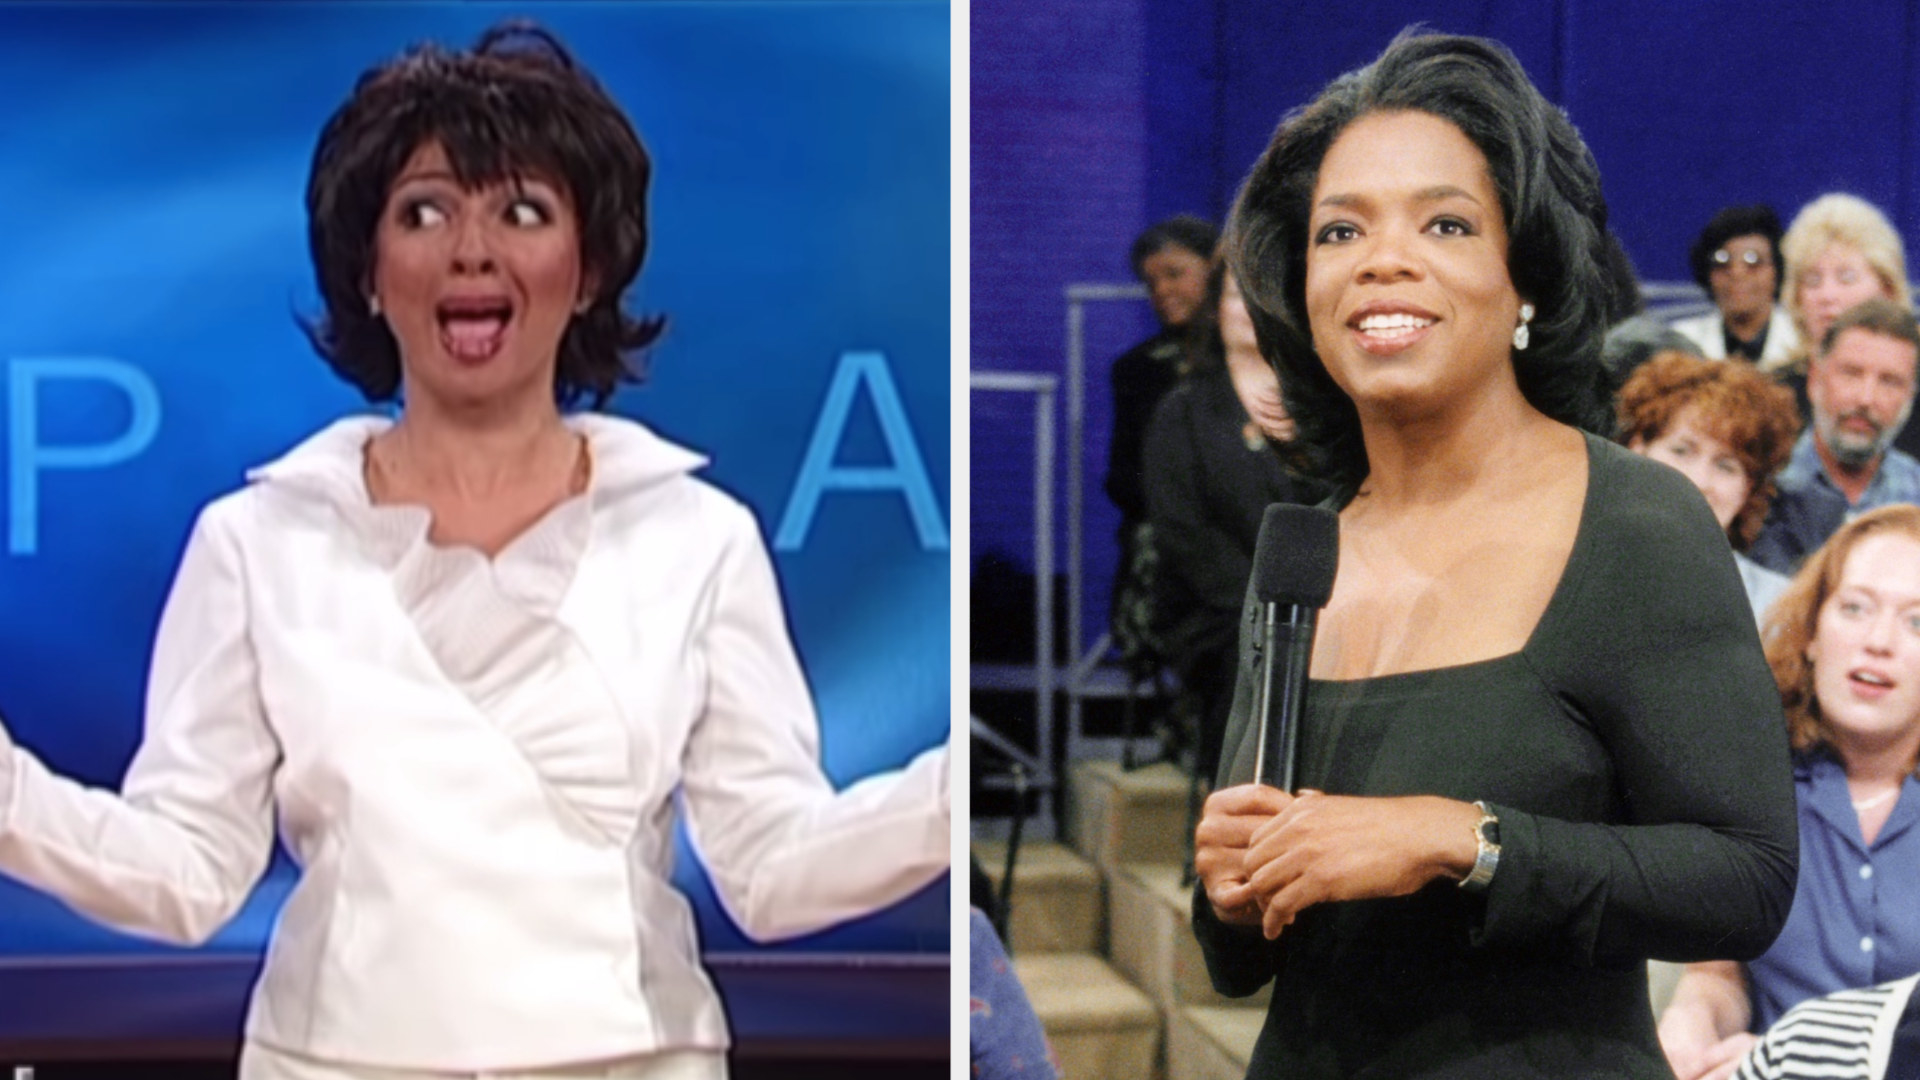 """Maya Rudolph with a short black bob hosting """"The Oprah Winfrey Show"""" on """"SNL"""" side by side with a photo of Oprah"""